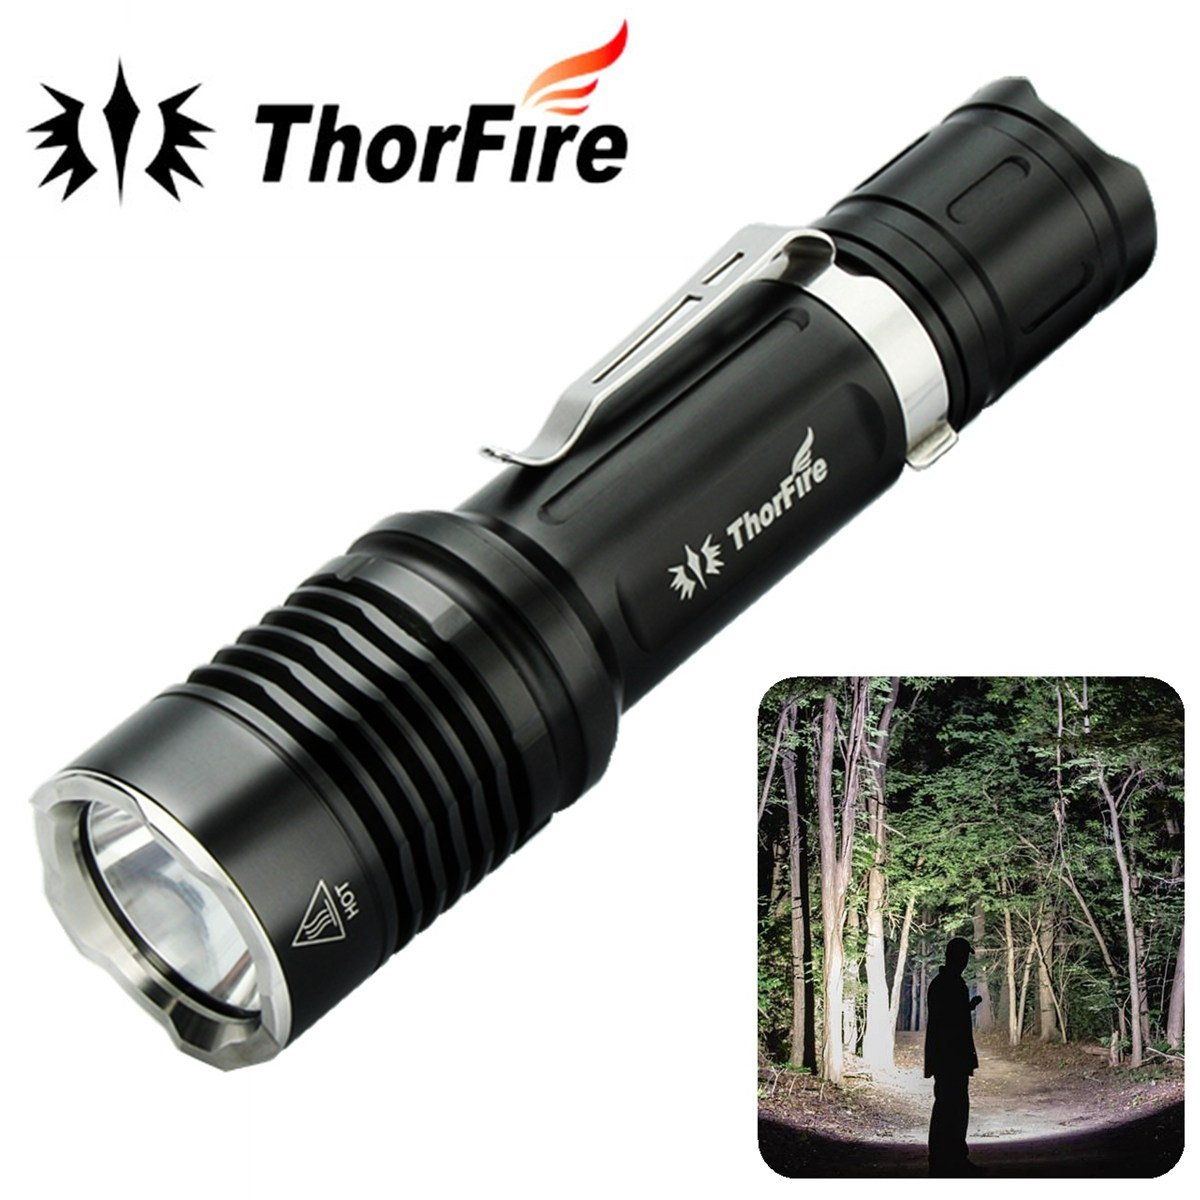 ThorFire VG10S XPL2 Ultra Bright Tactical LED Flashlight 1100LM 5 Modes Camping Hiking Hunting Torch 18650